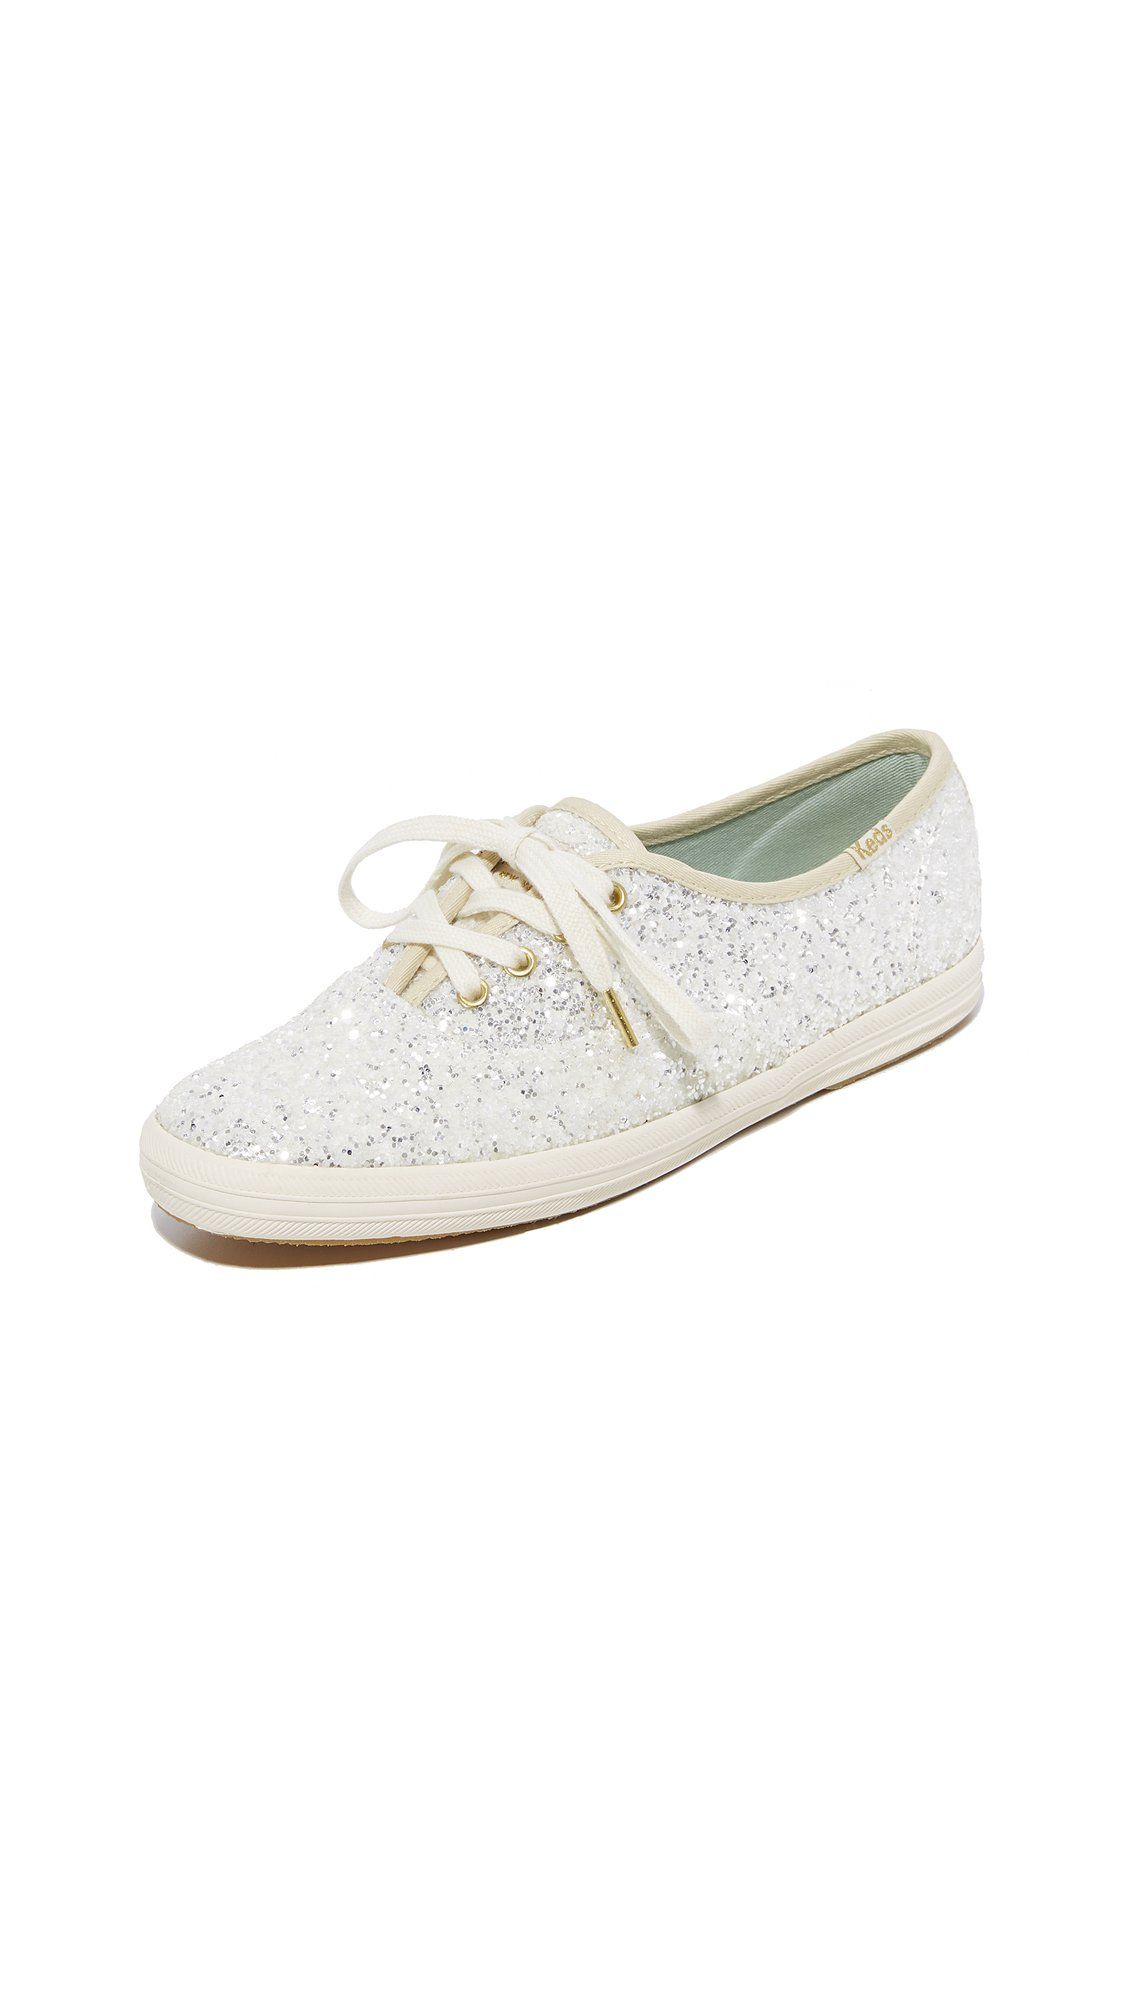 af279fdd354 Get Quotations · Keds Women s x Kate Spade New York Glitter Sneakers